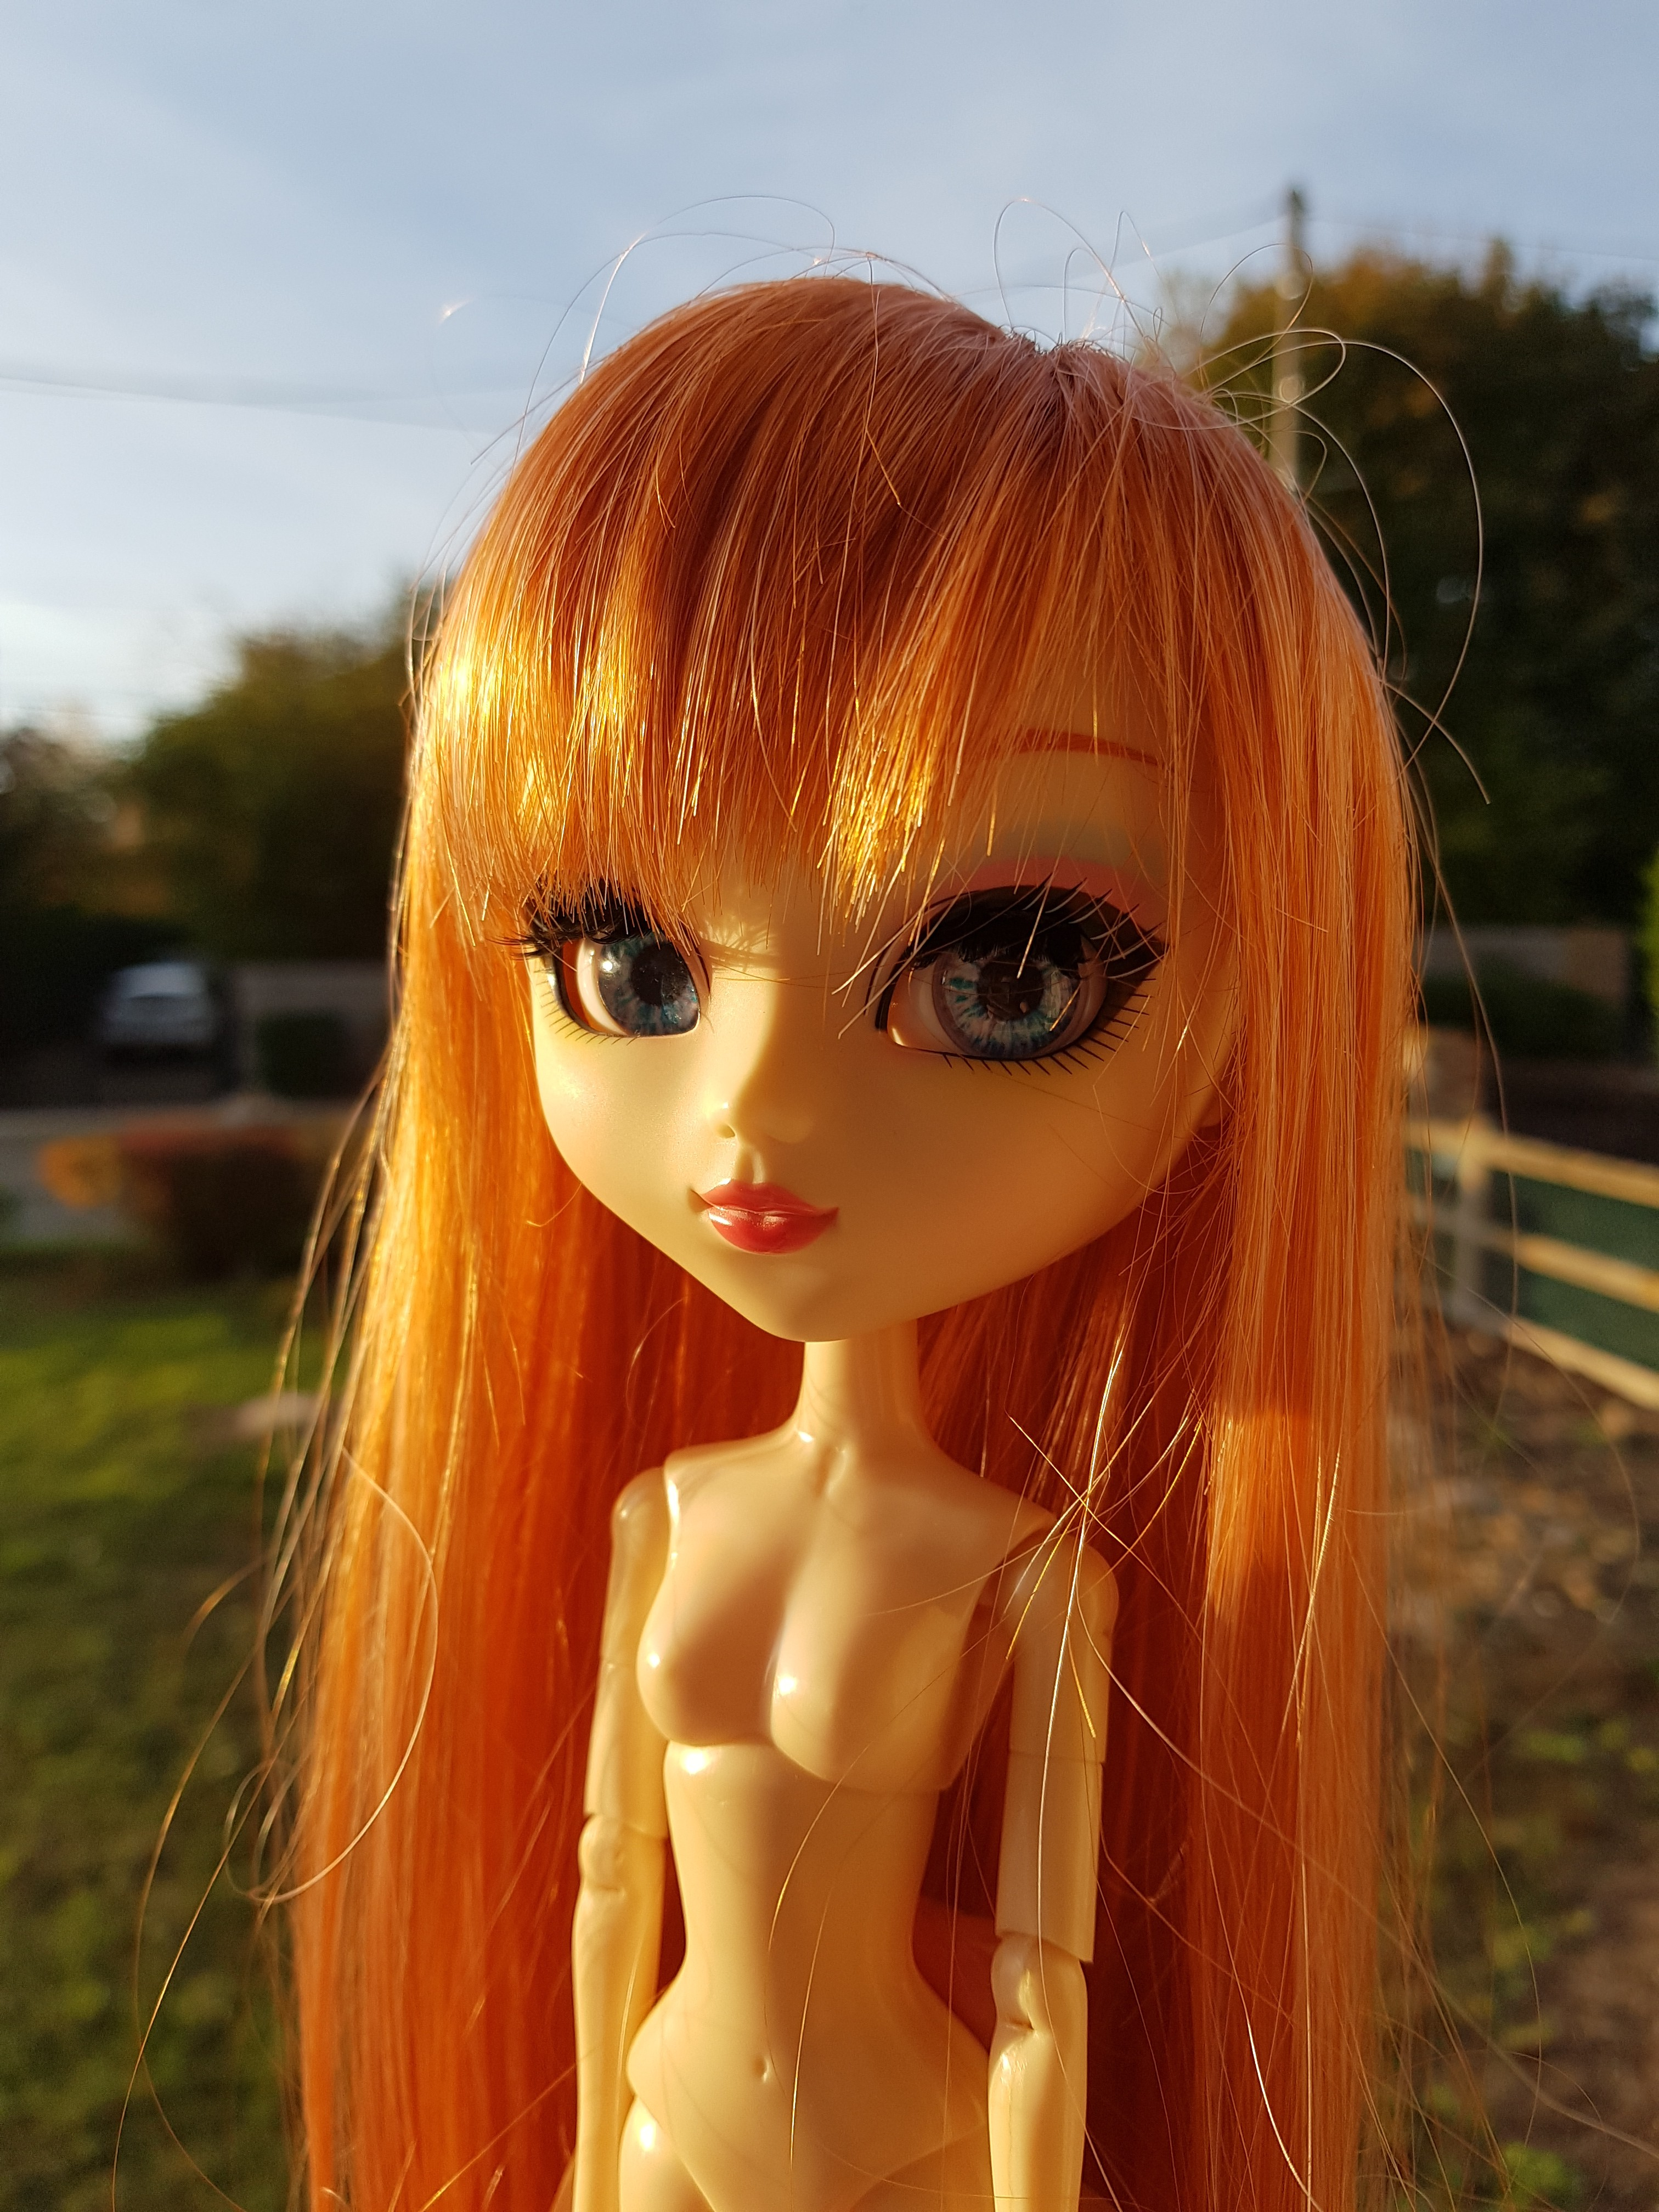 [VENTES] - Pullip Lunatic Queen 181206013636689005